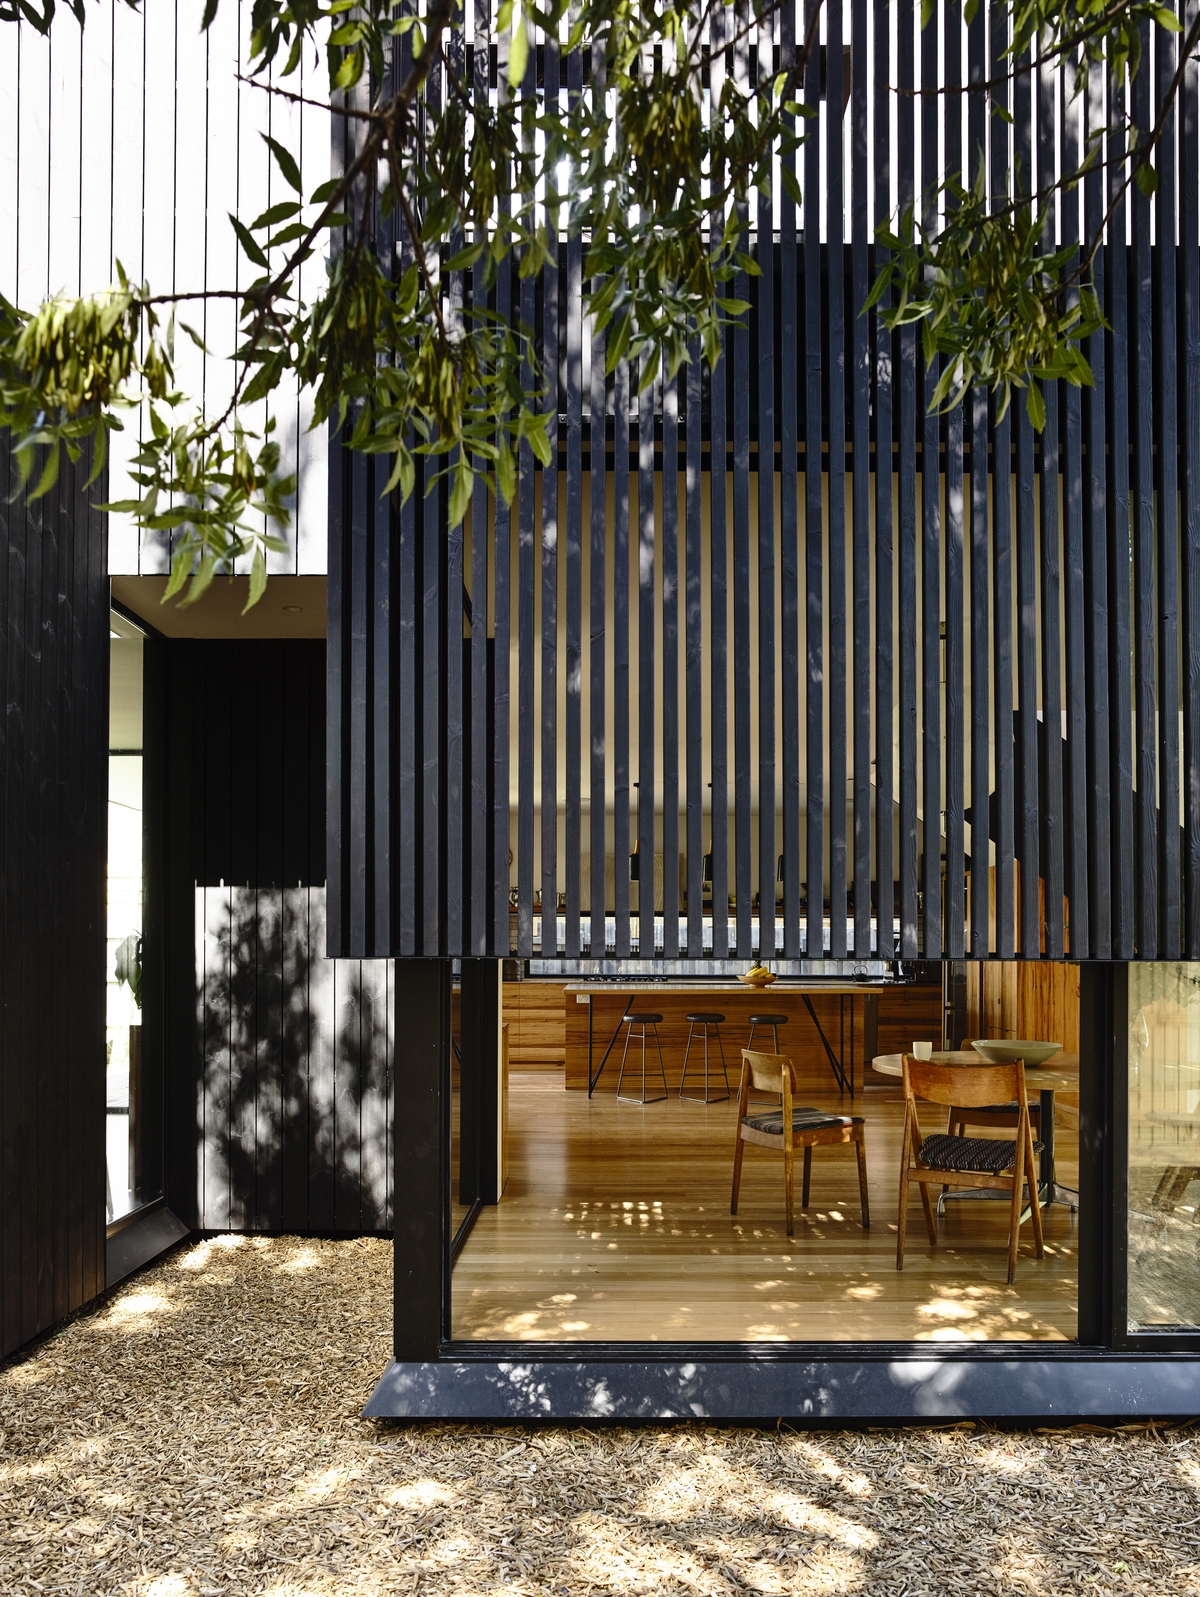 a dwelling project with wooden addition by ola studio 15 a dwelling project with wooden addition by Ola Studio